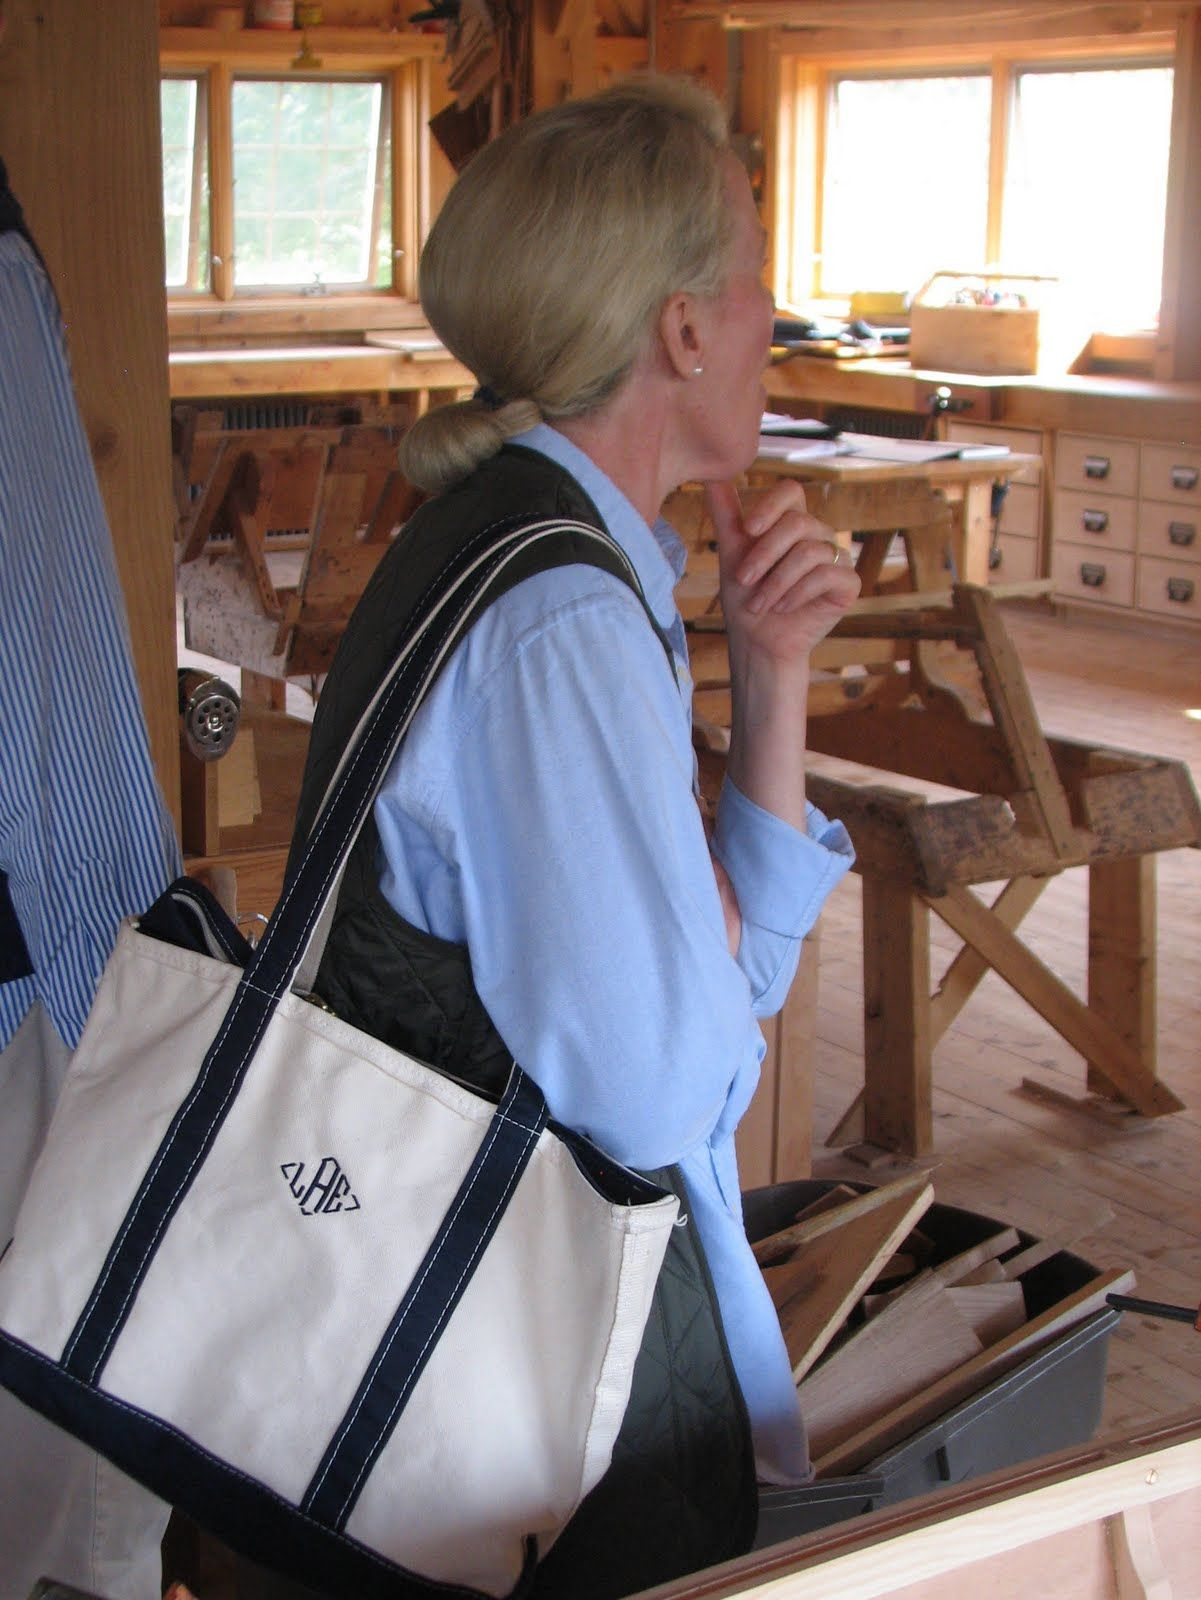 LL Bean classic canvas boat and tote. Made in America since 1945 ...